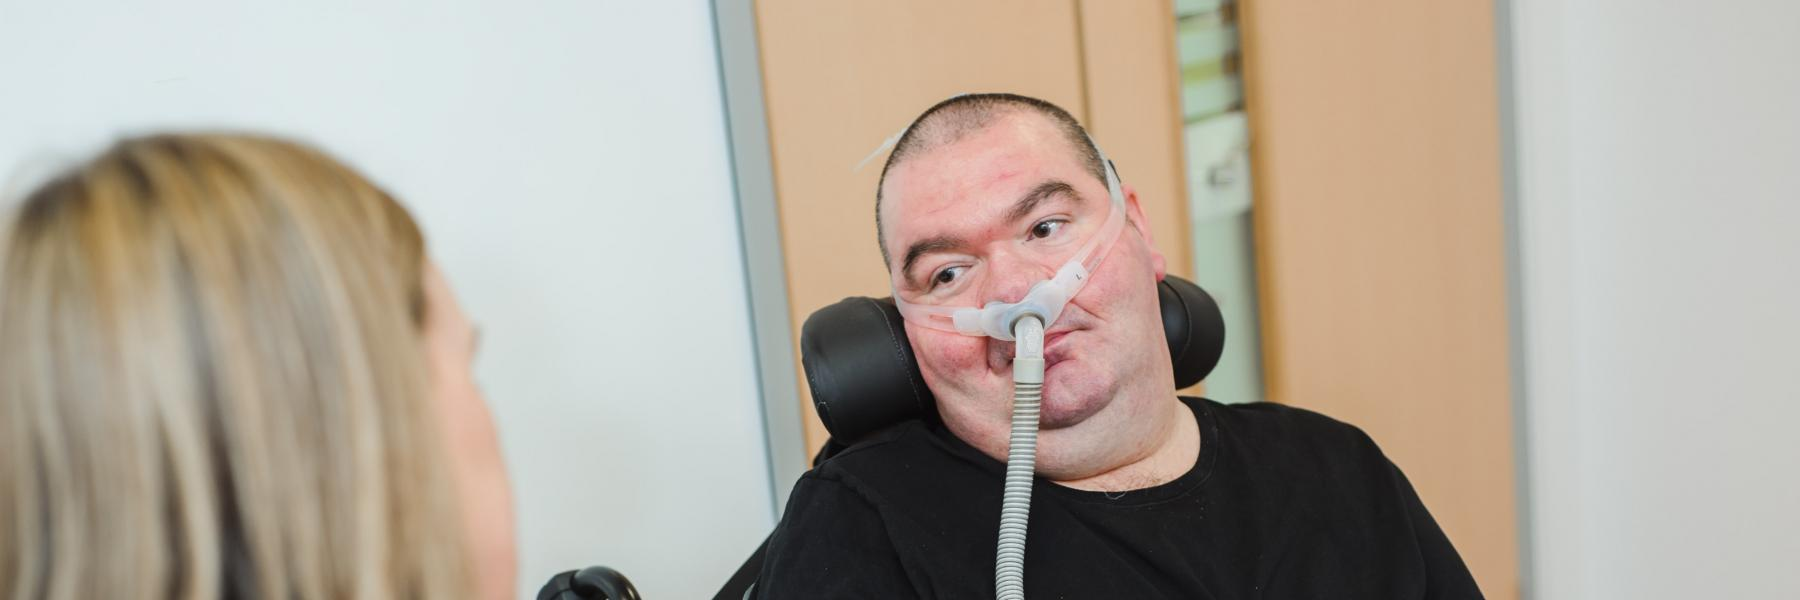 Person with MND with ventilator